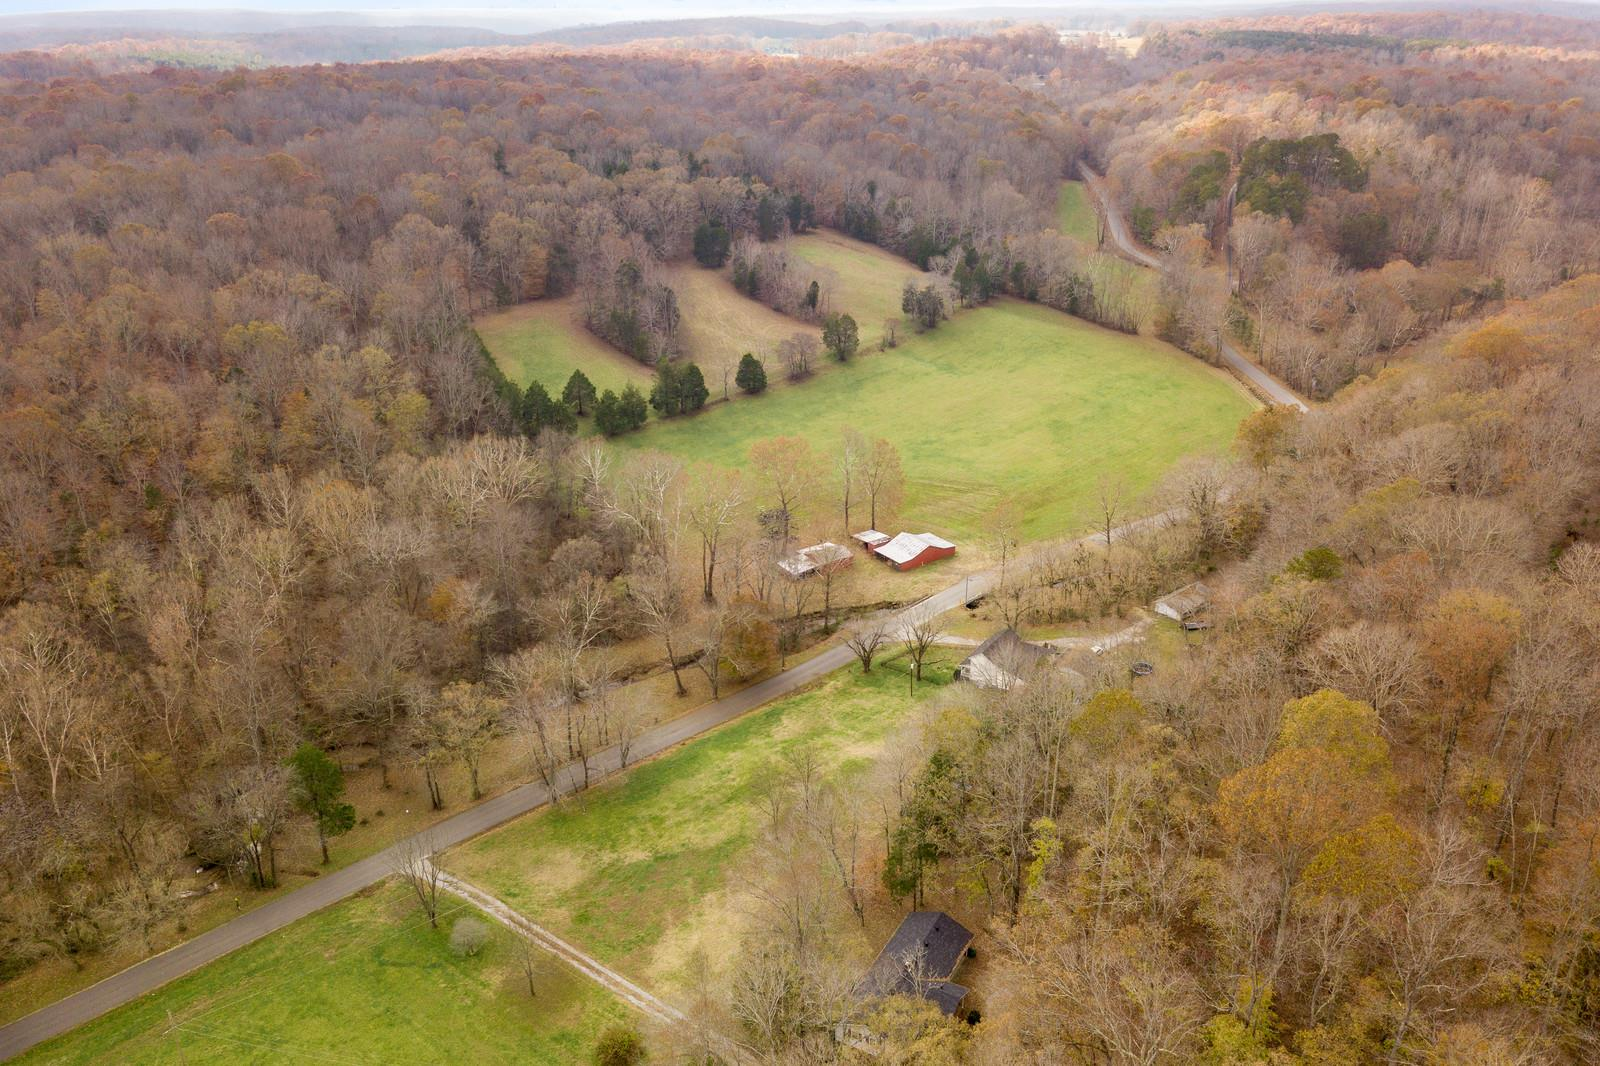 740 Potter Road Tract 3, Dickson, TN 37055 - Dickson, TN real estate listing